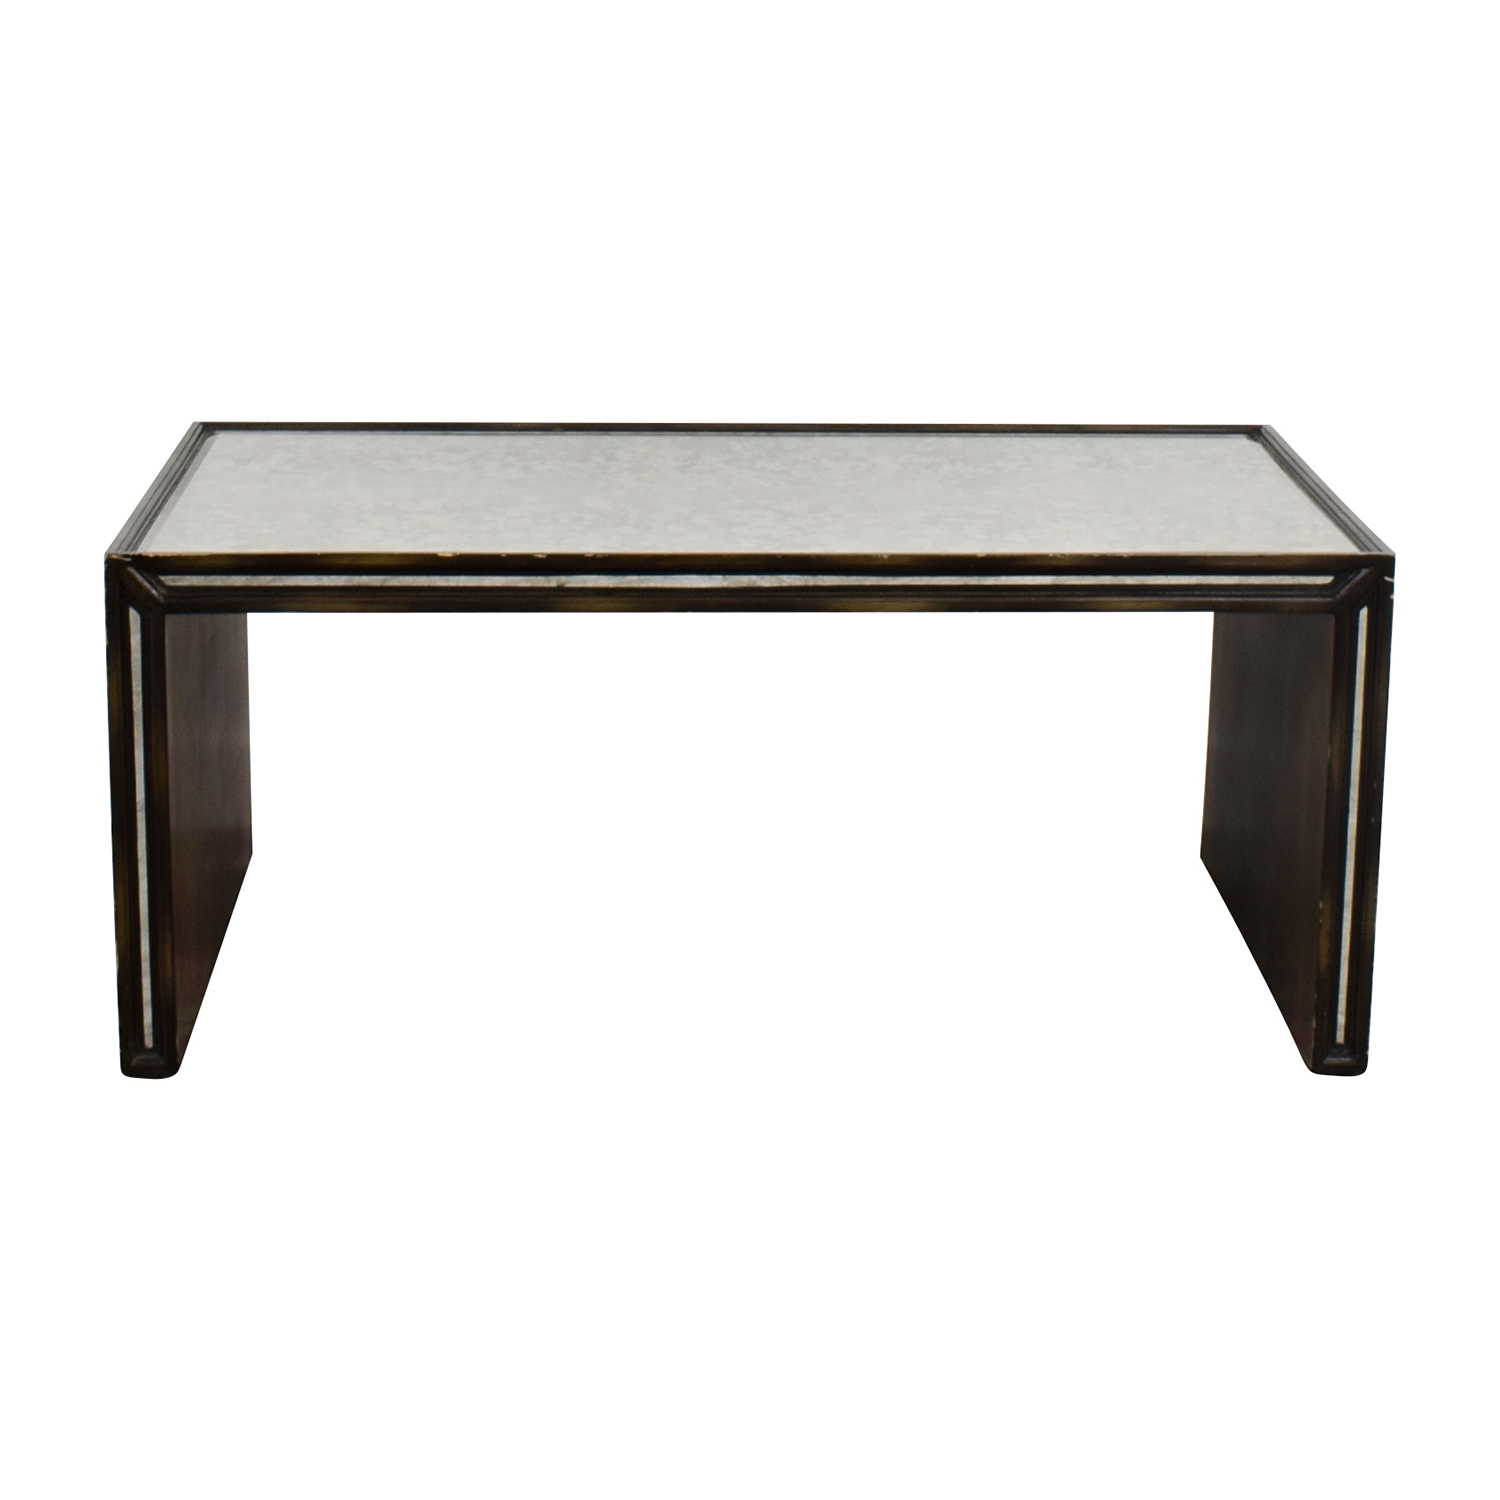 Delightful Shop Arhaus Mirrored Coffee Table Arhaus Furniture Coffee Tables ...